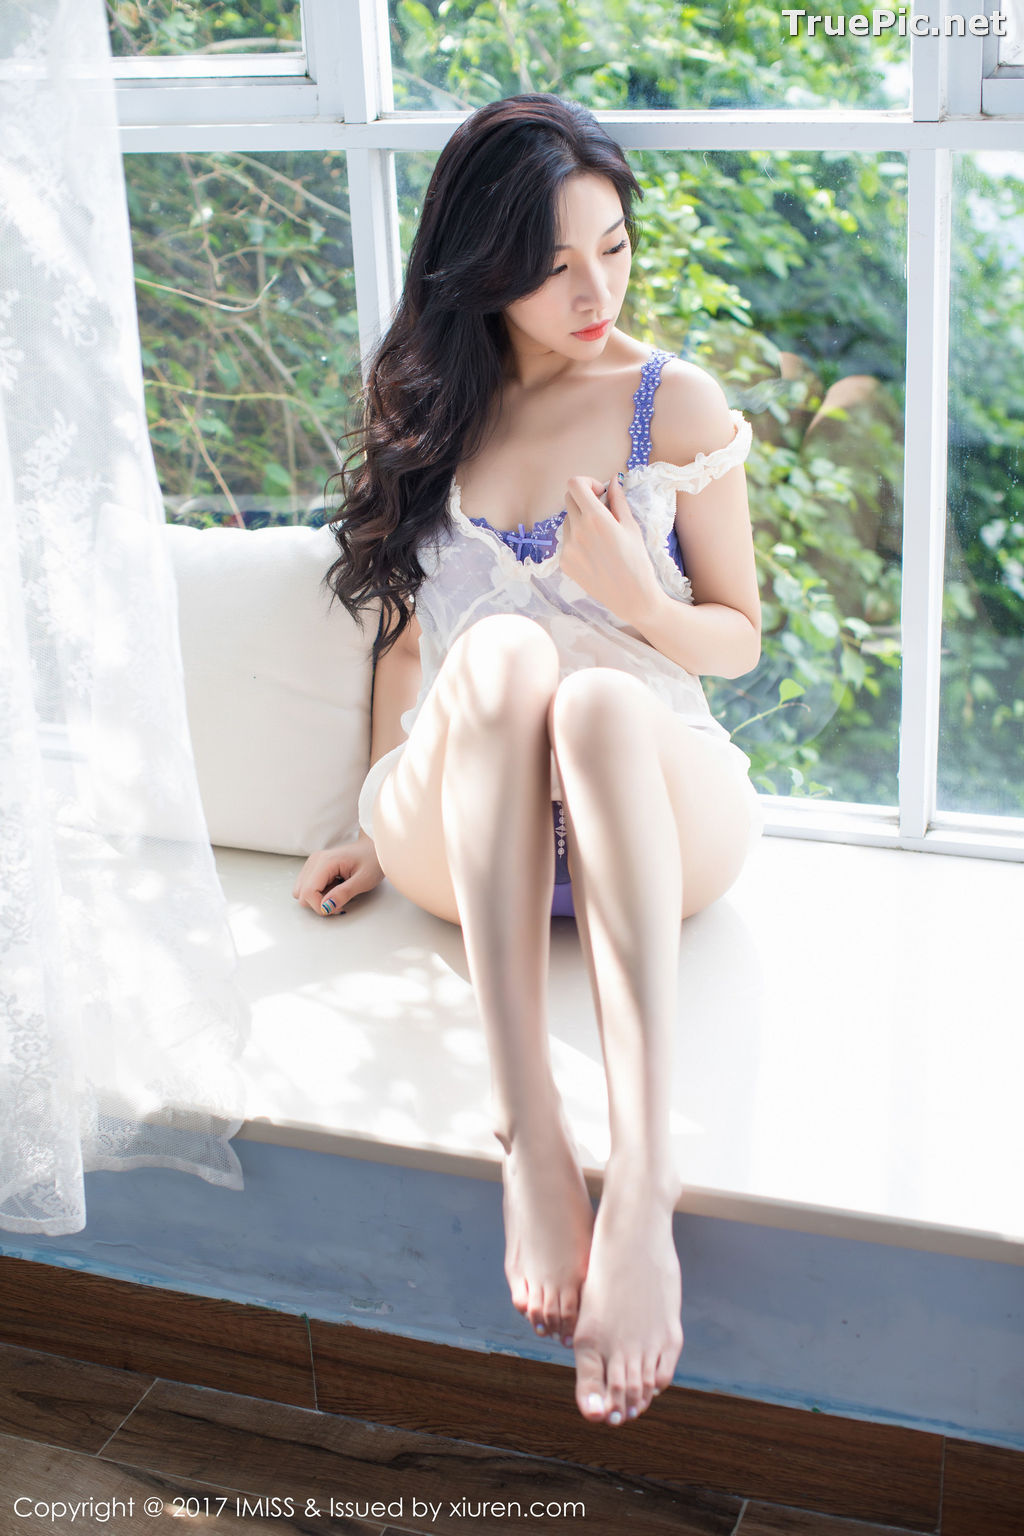 Image IMISS Vol.187 - Chinese Model Xiao Hu Li (小狐狸Sica) With Stockings Beautiful Legs - TruePic.net - Picture-4